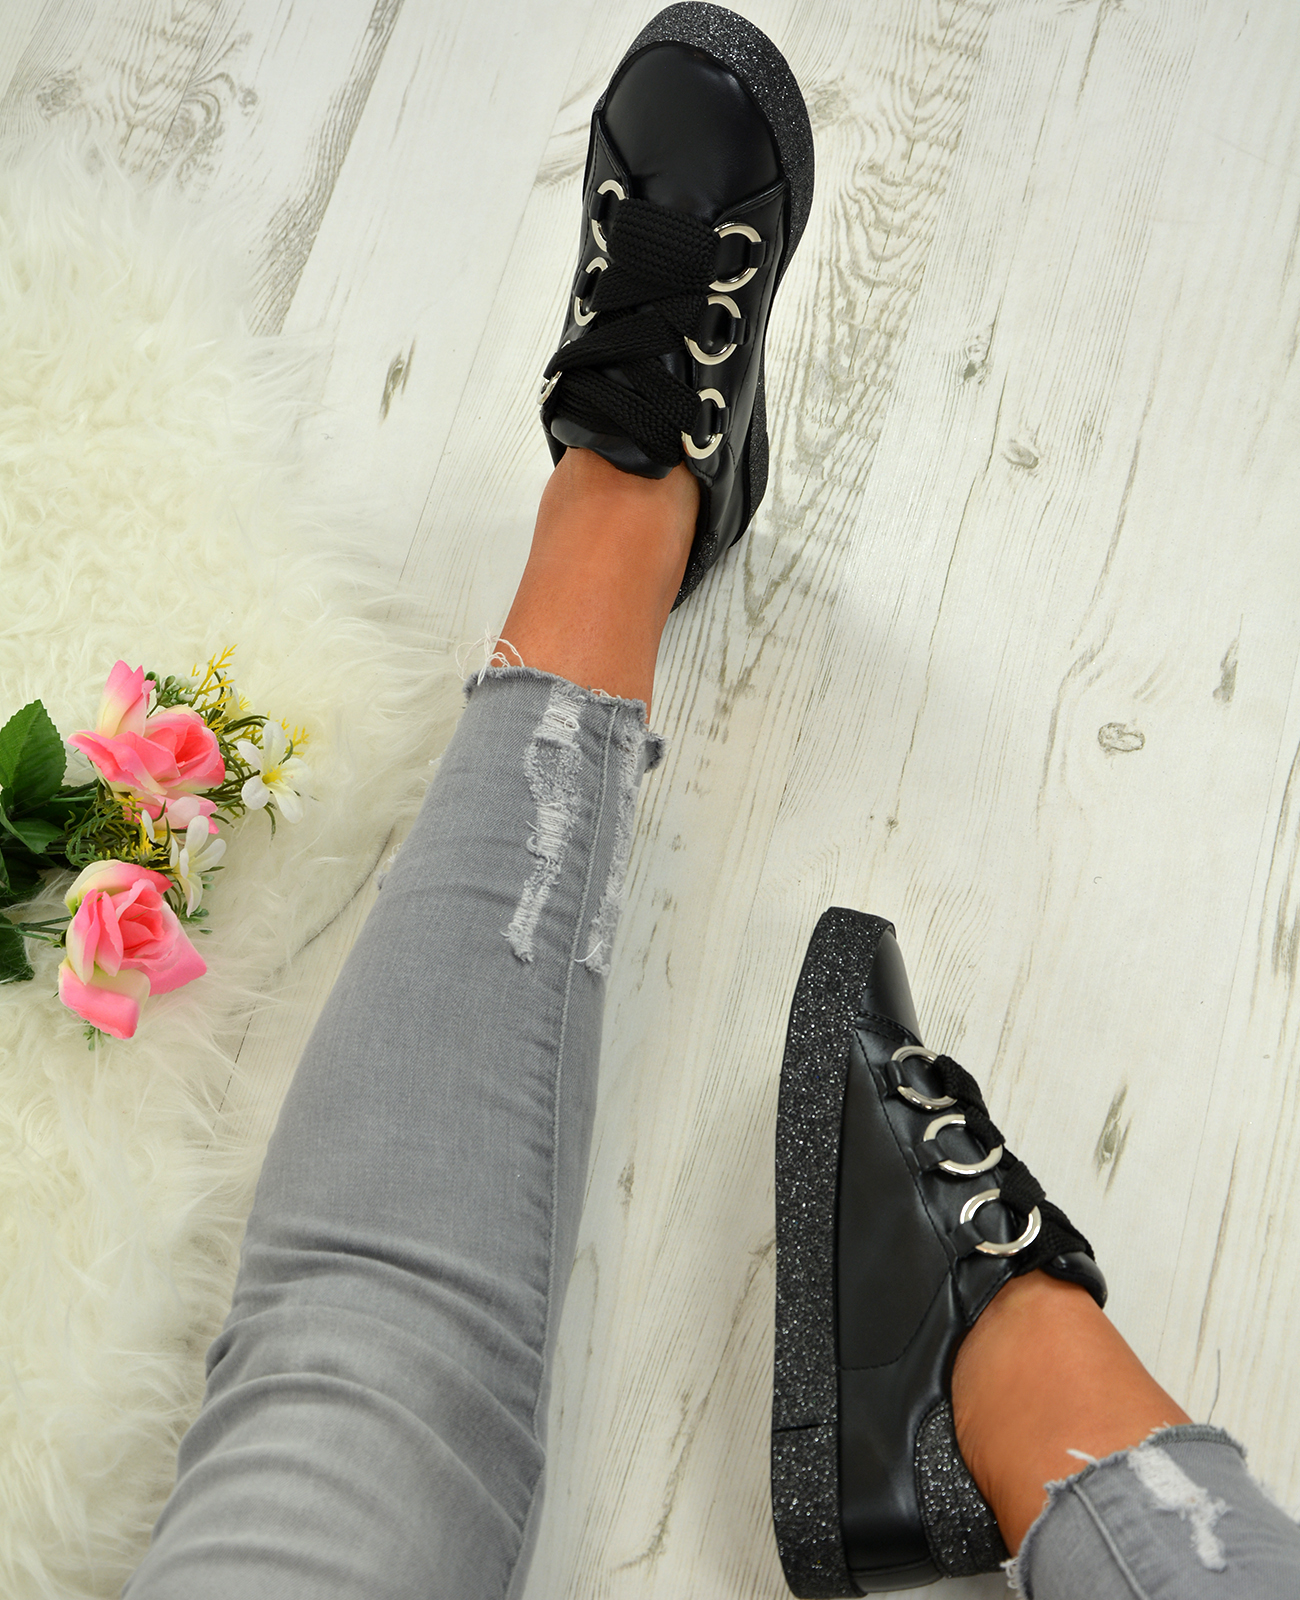 LADIES-WOMENS-GLITTER-SNEAKERS-SPARKLE-TRAINERS-LACE-UP-PLIMSOLL-PUMPS-SHOES thumbnail 9